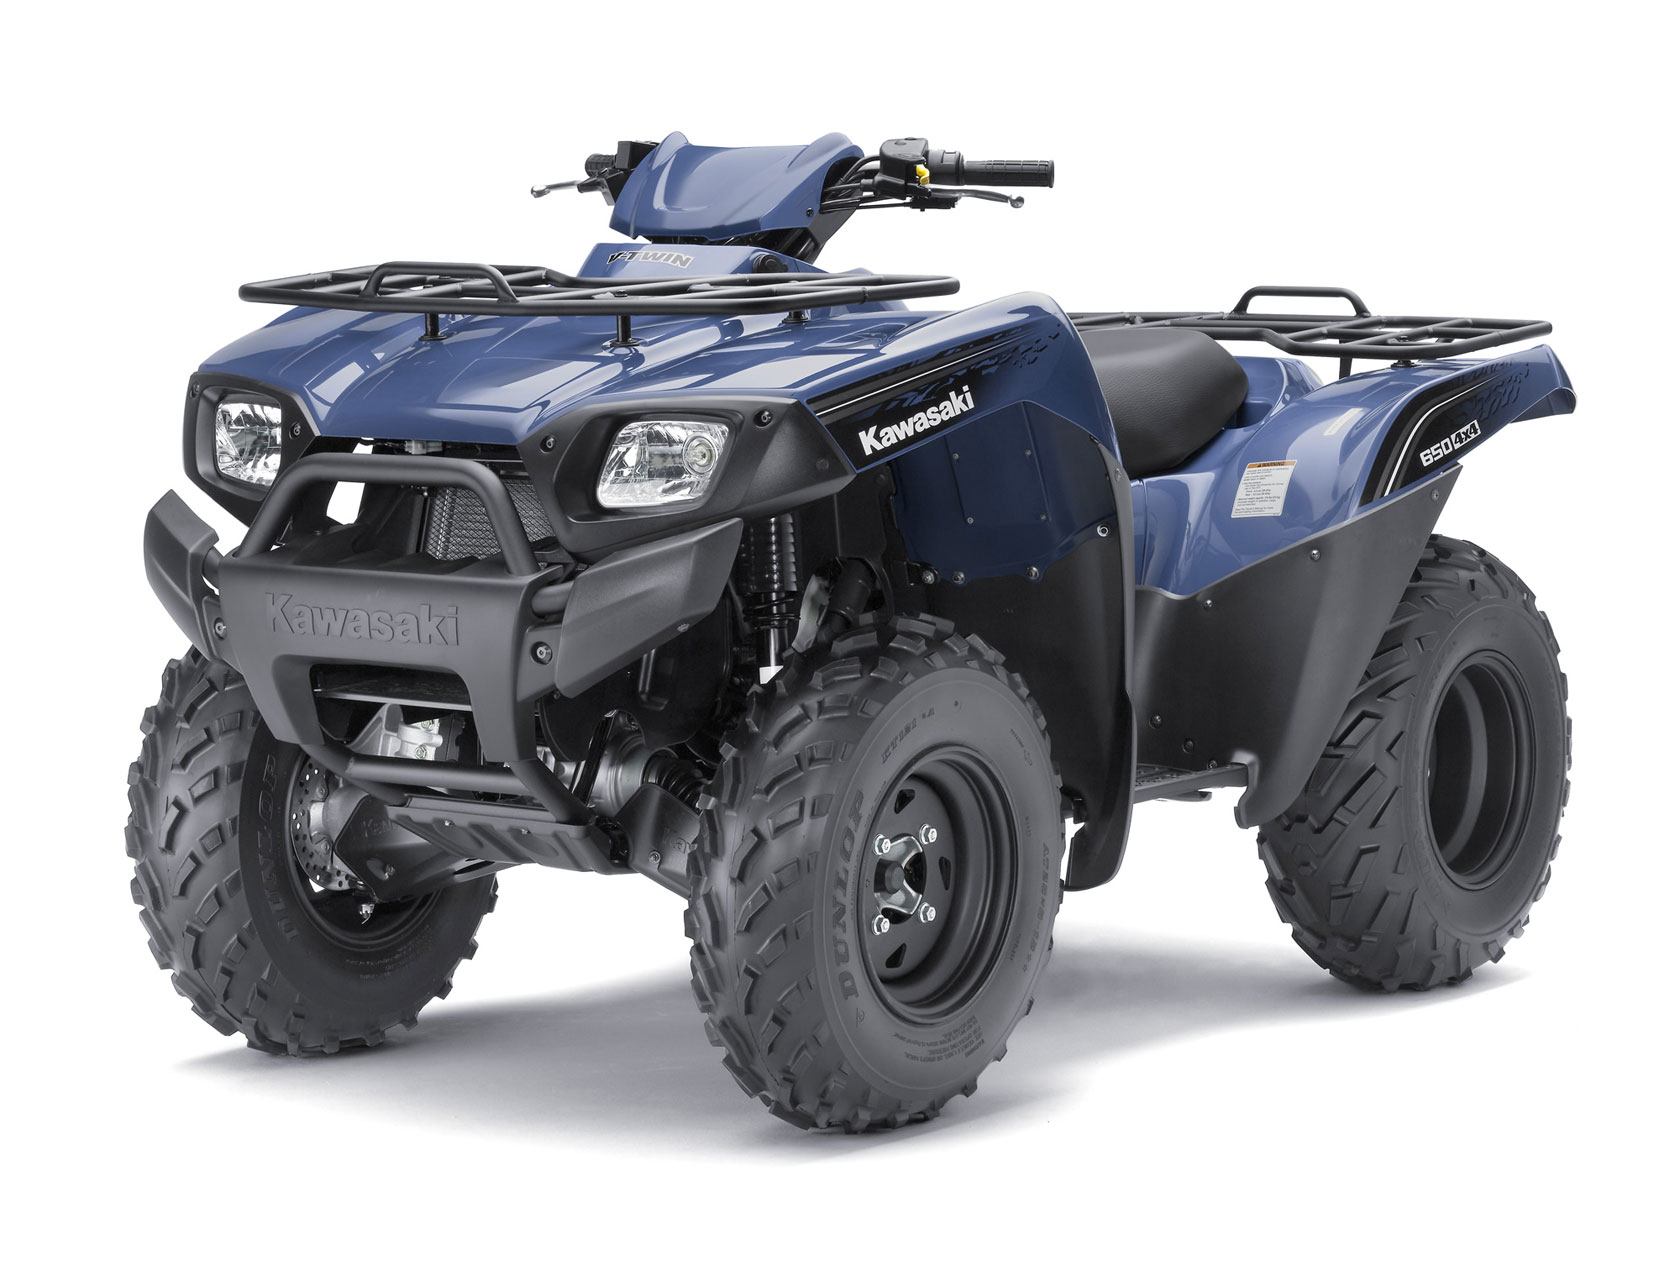 Kawasaki Brute Force 650 4x4 2011 images #86177